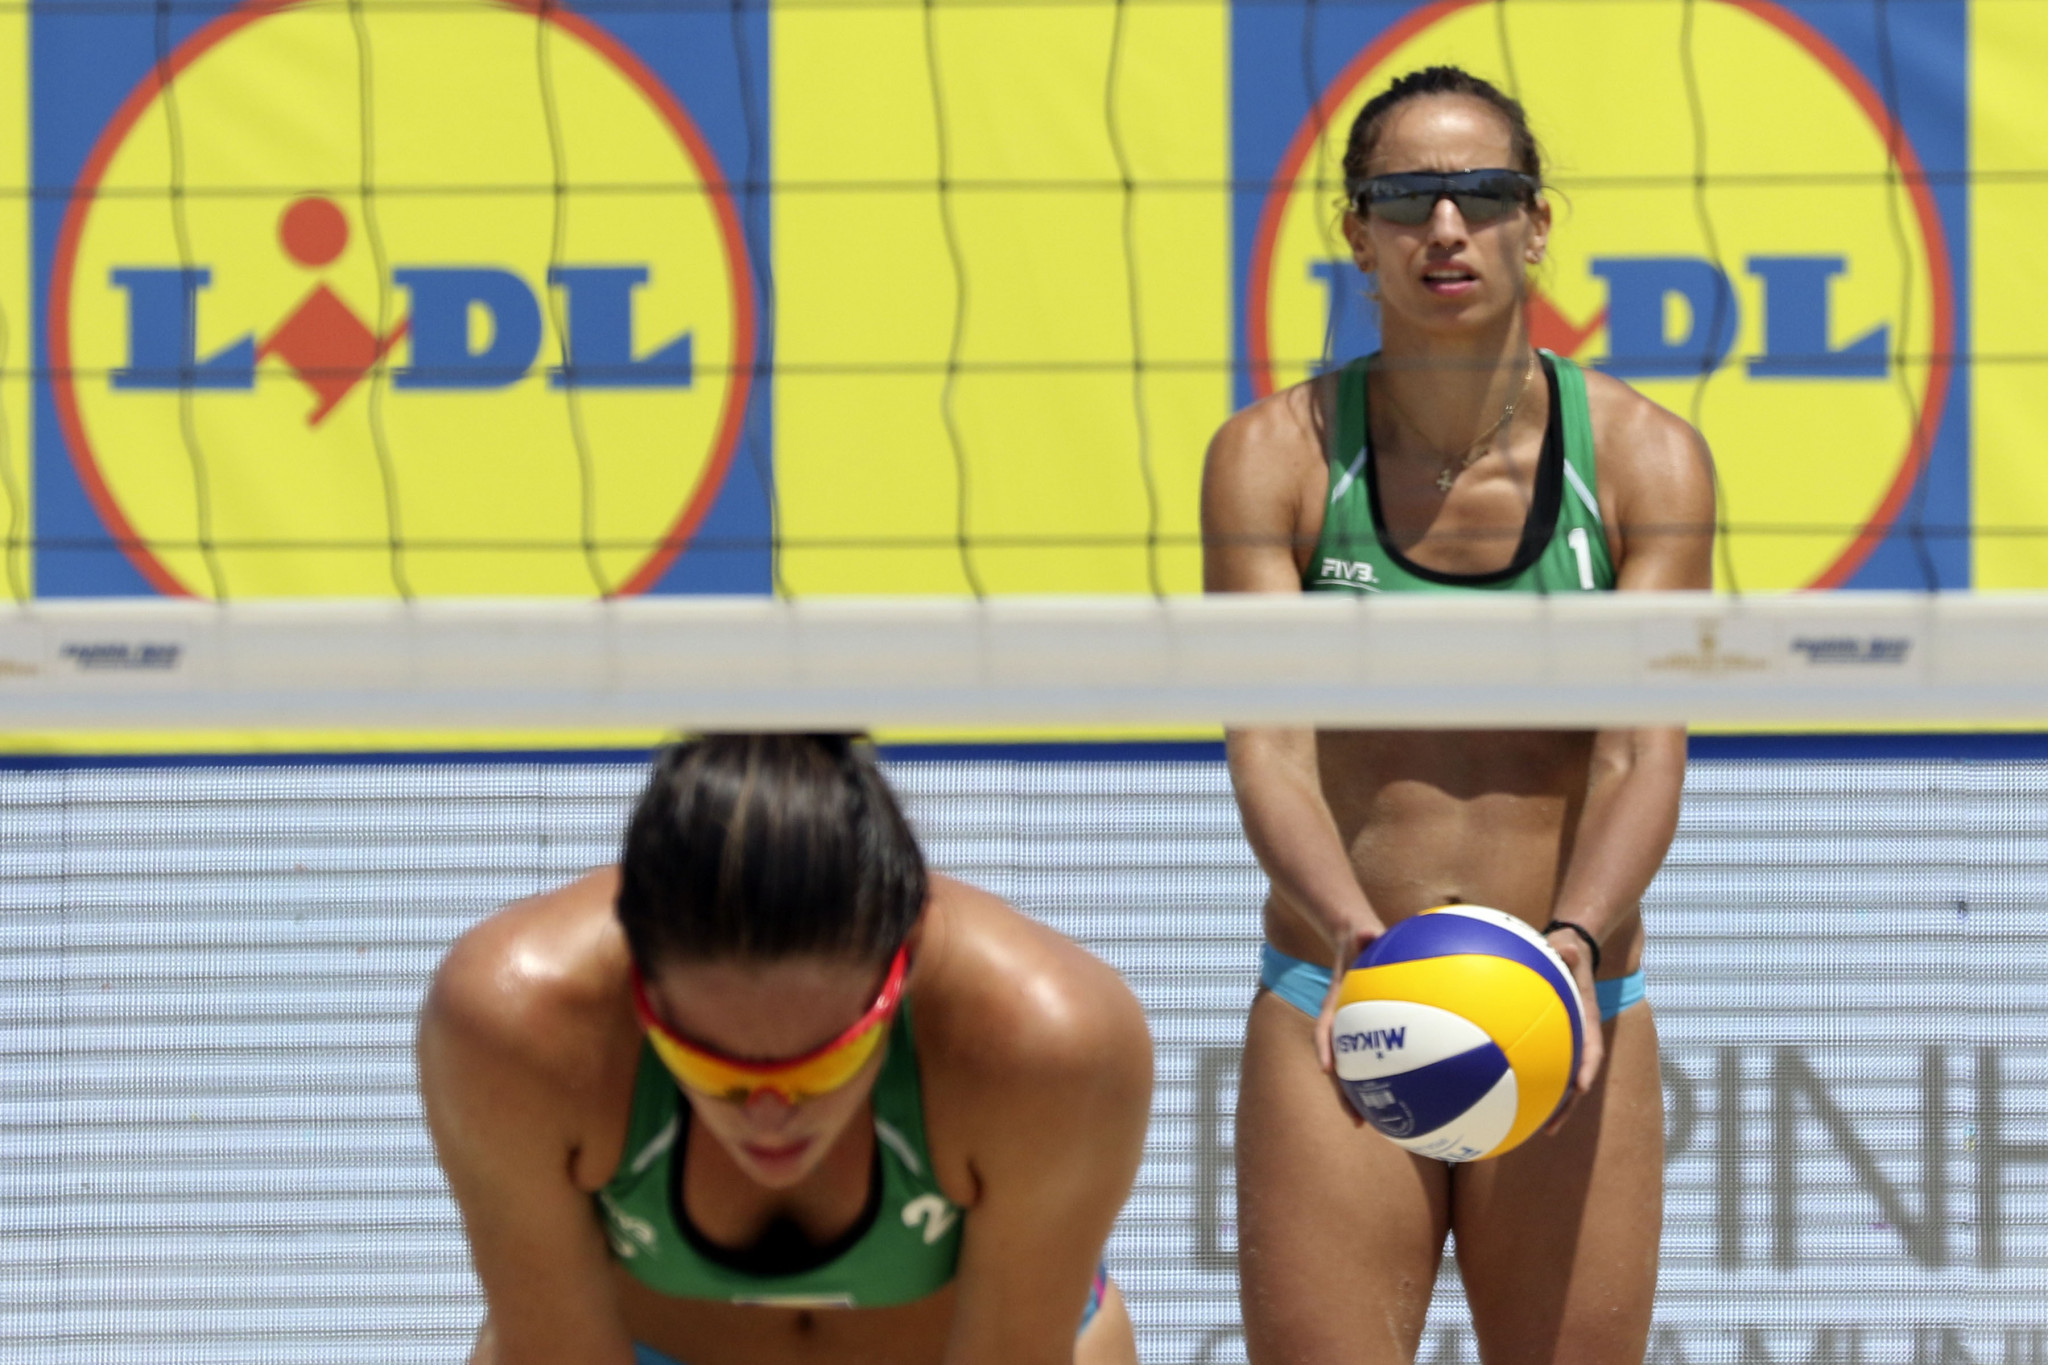 Record-breaker Arvaniti and partner Karagkouni reach main draw at FIVB World Tour in Portugal